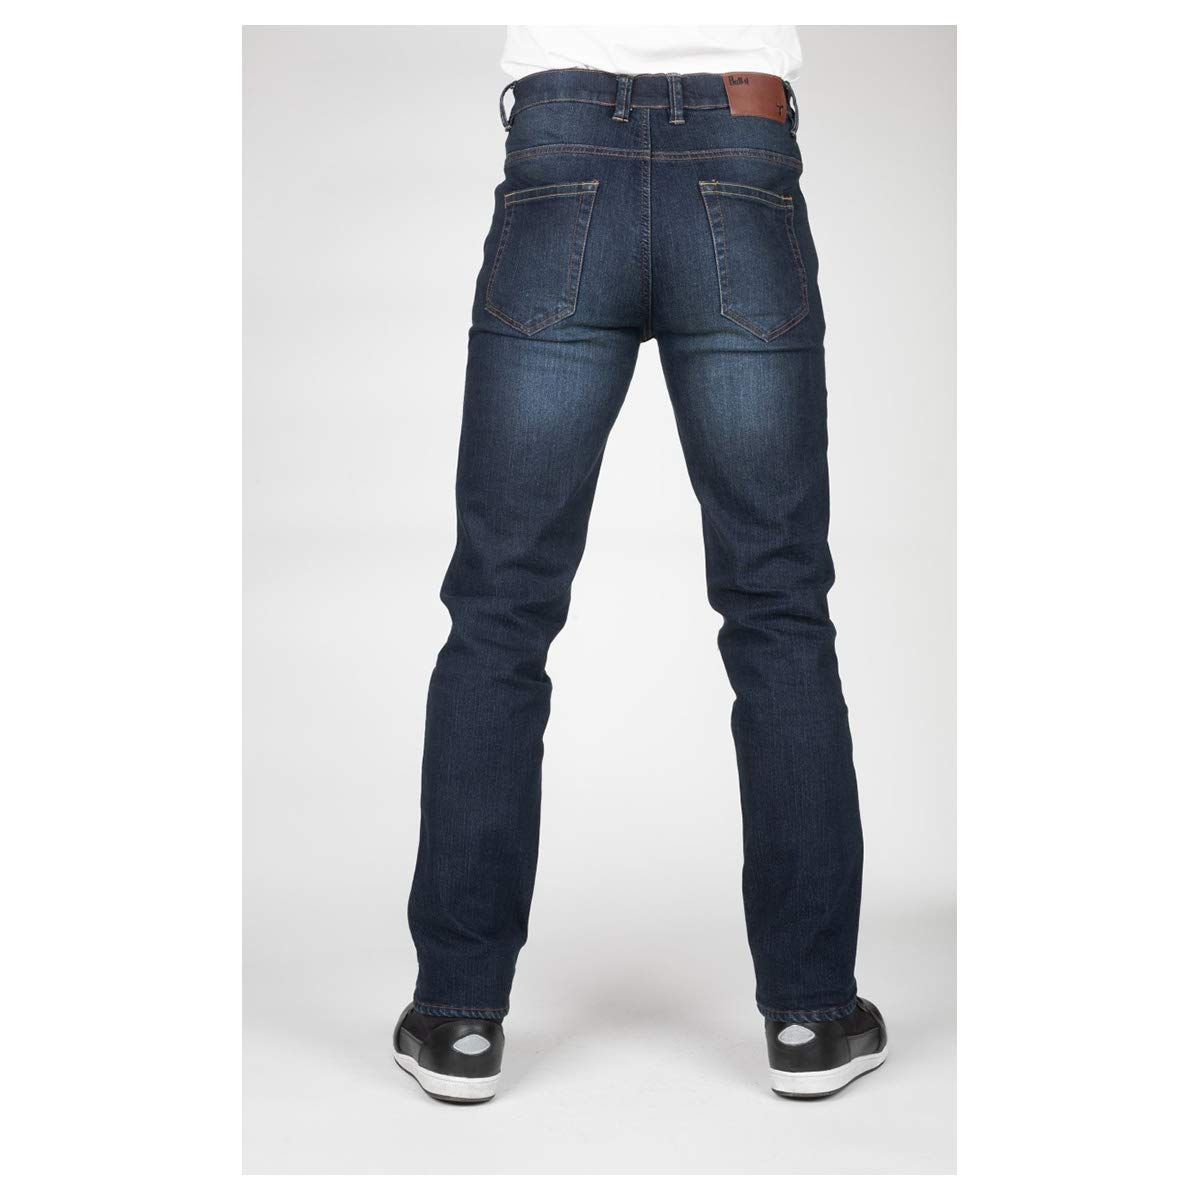 Bull-it Tactical SP75 Icon Easy Fit Blue Motorcycle Jeans